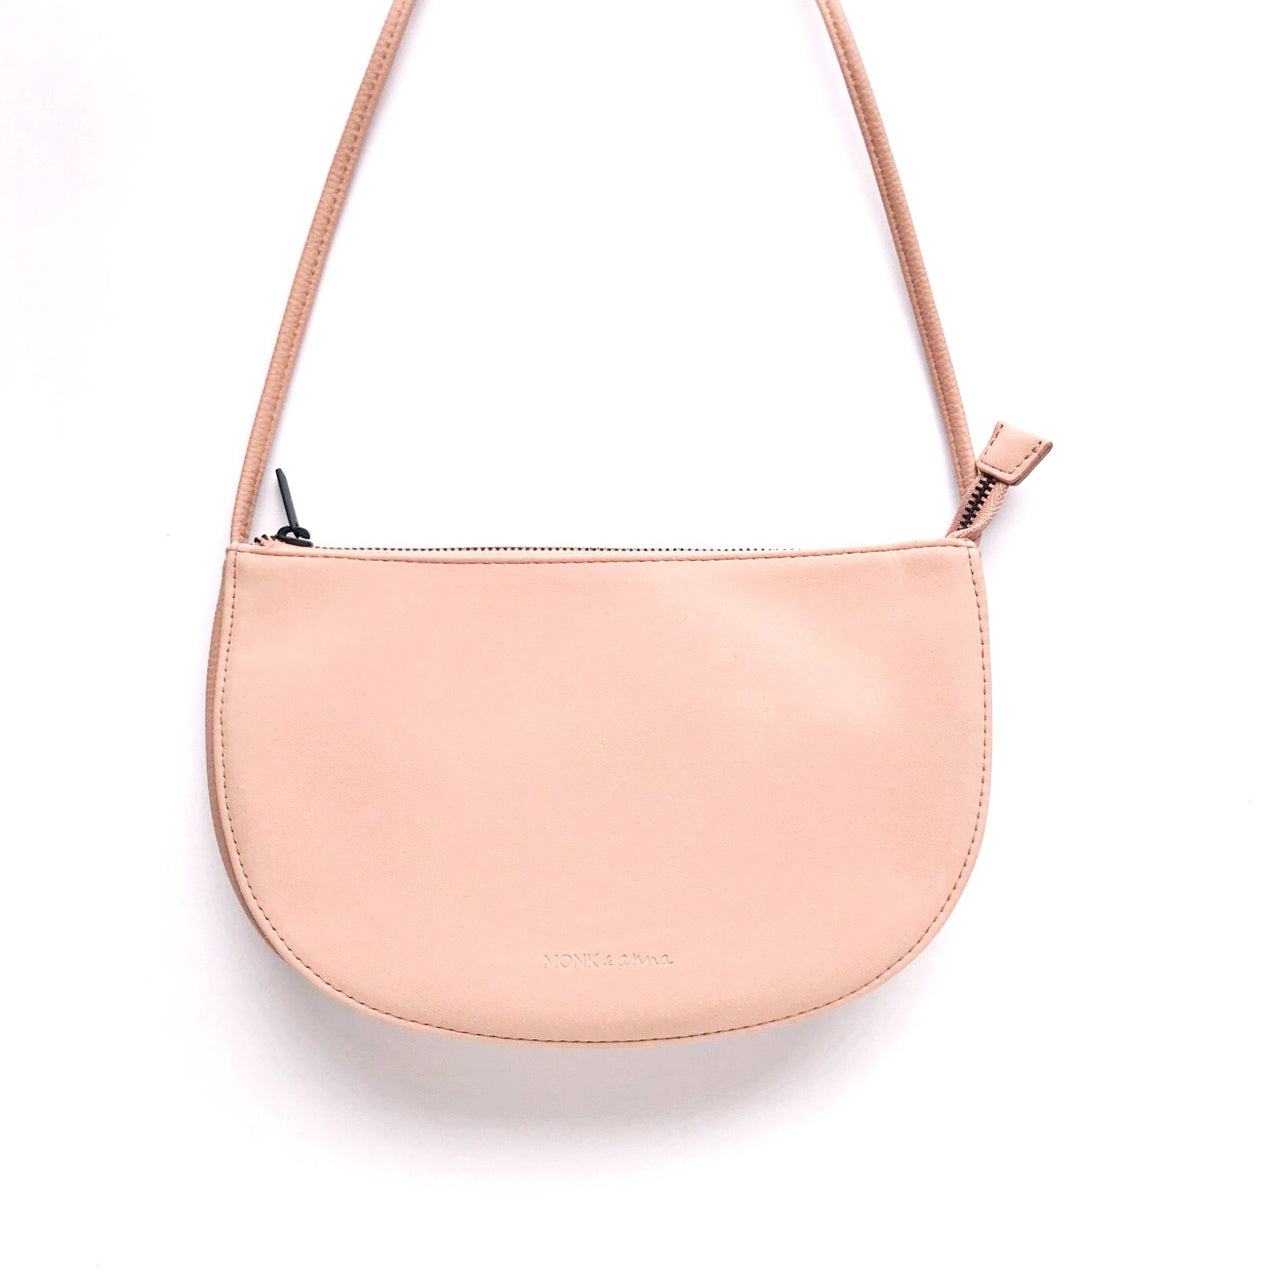 half moon bag - dawn